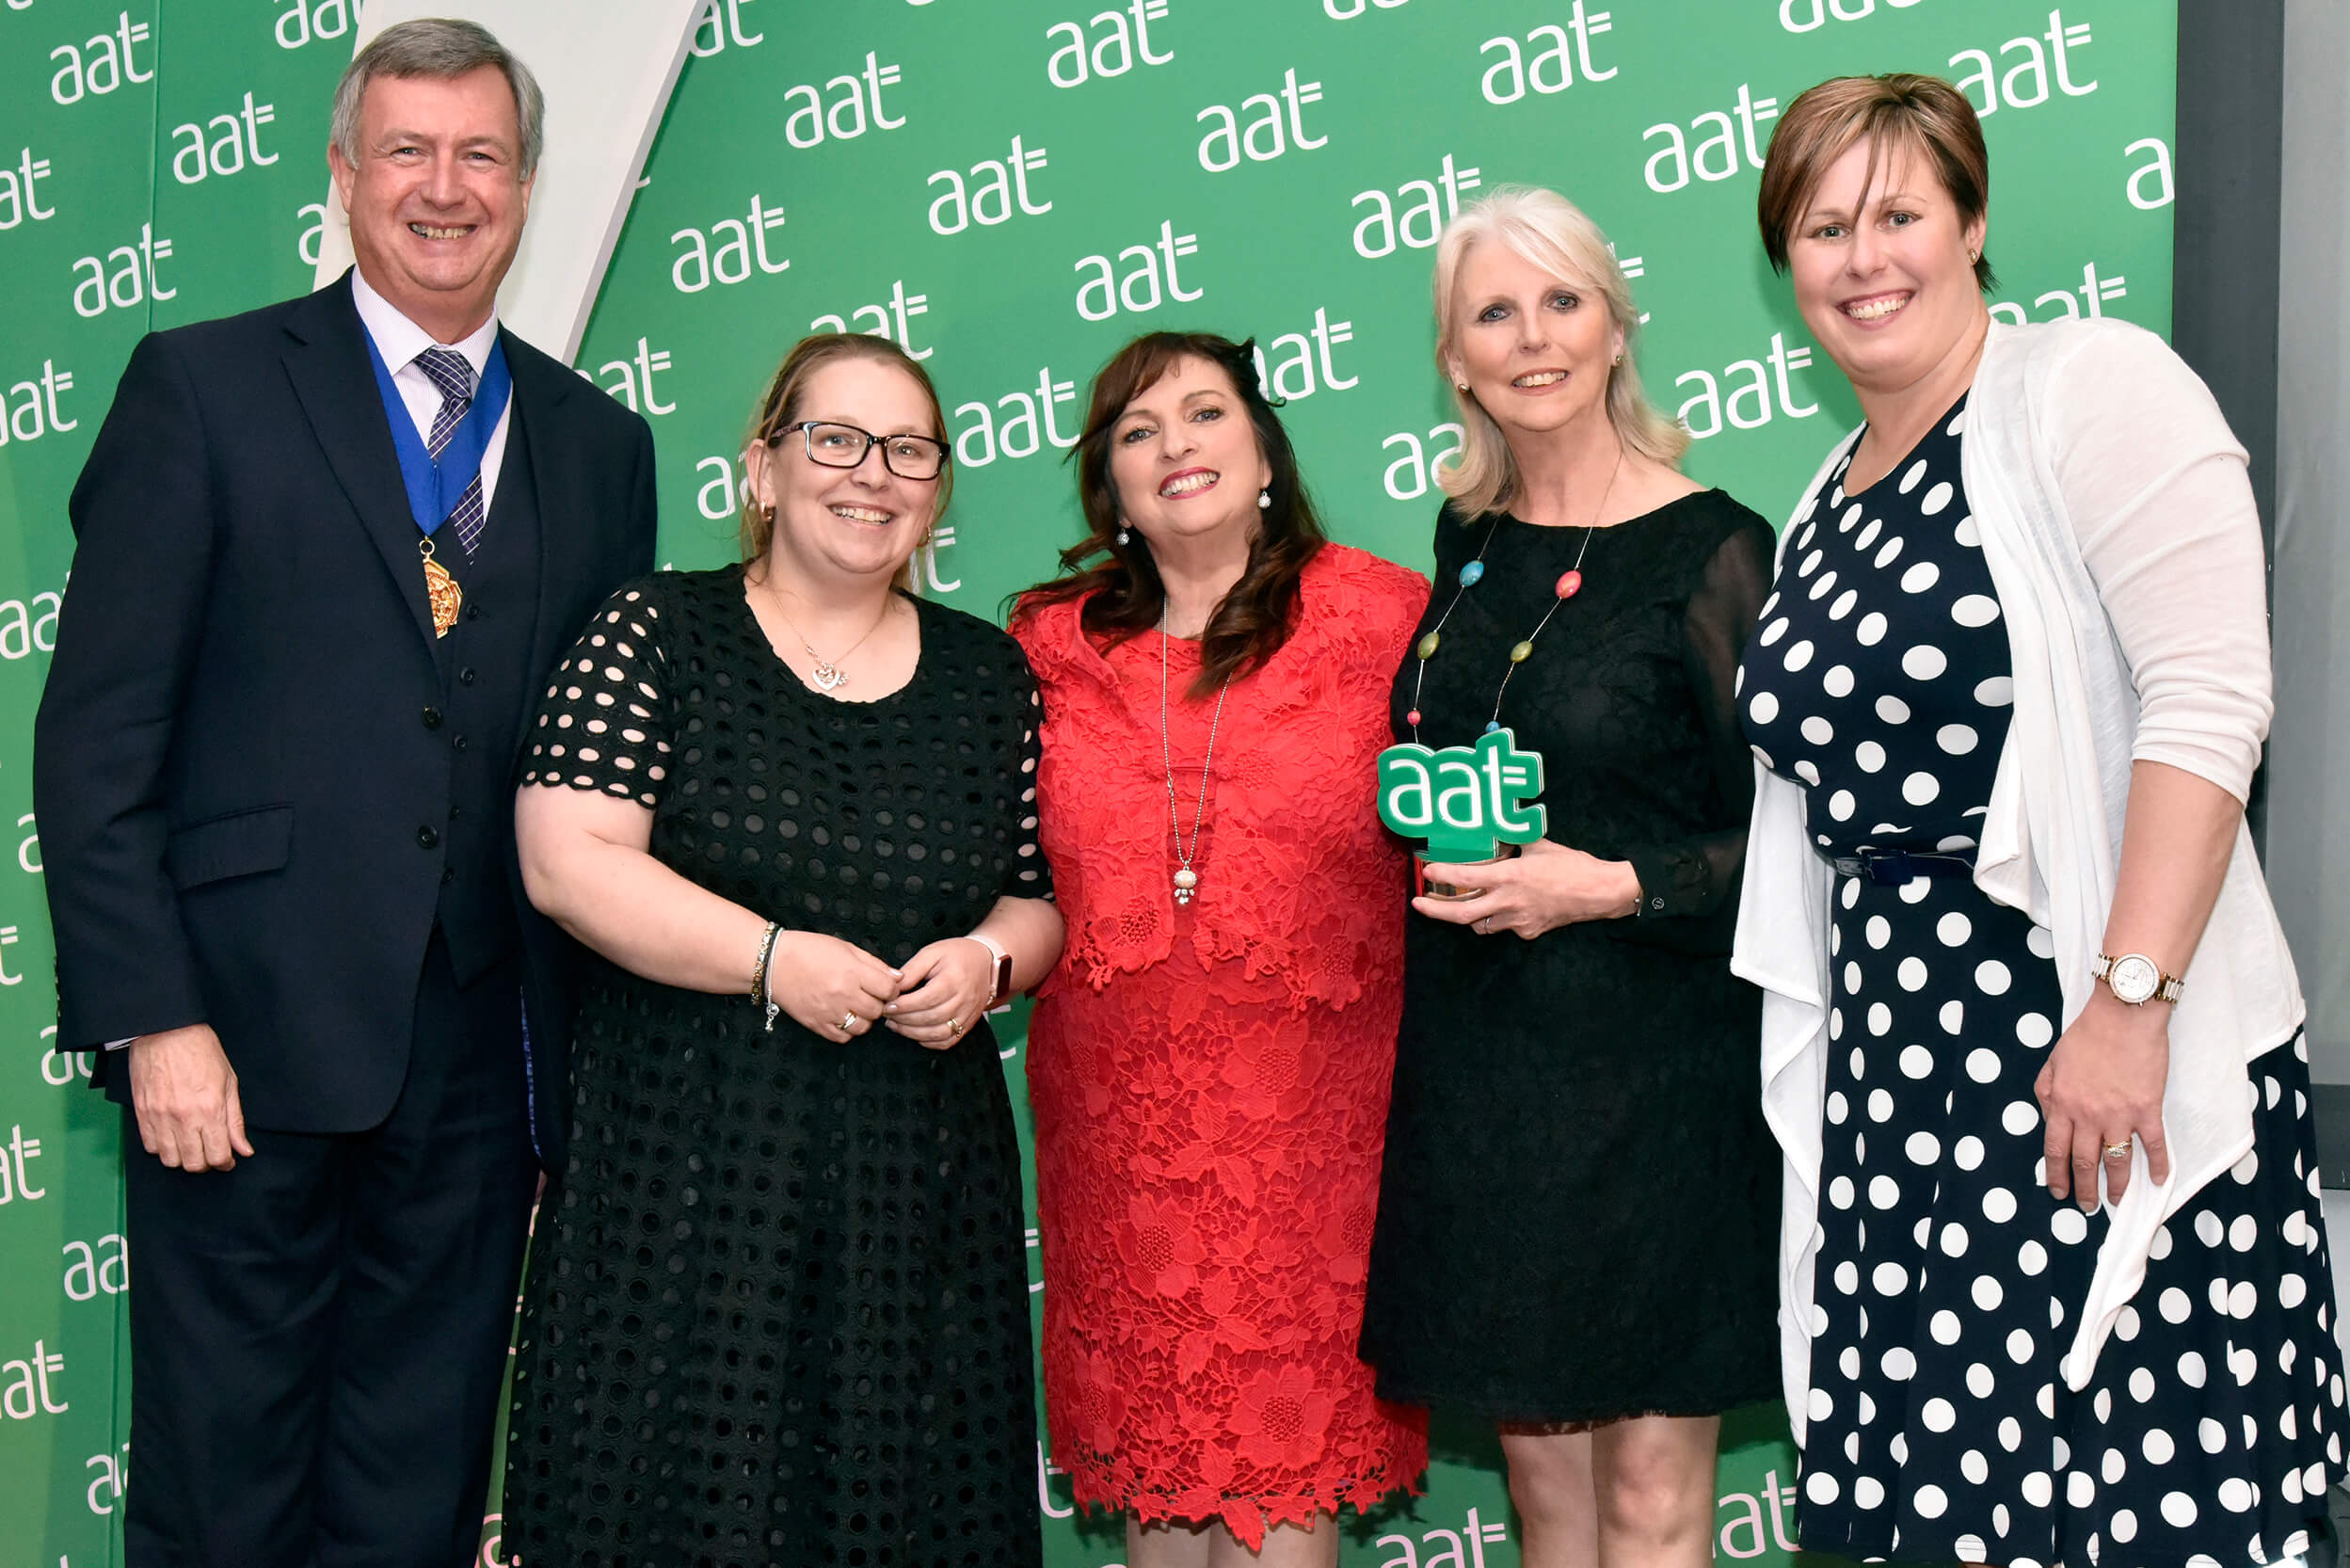 Premier Training - AAT Provider of the Year